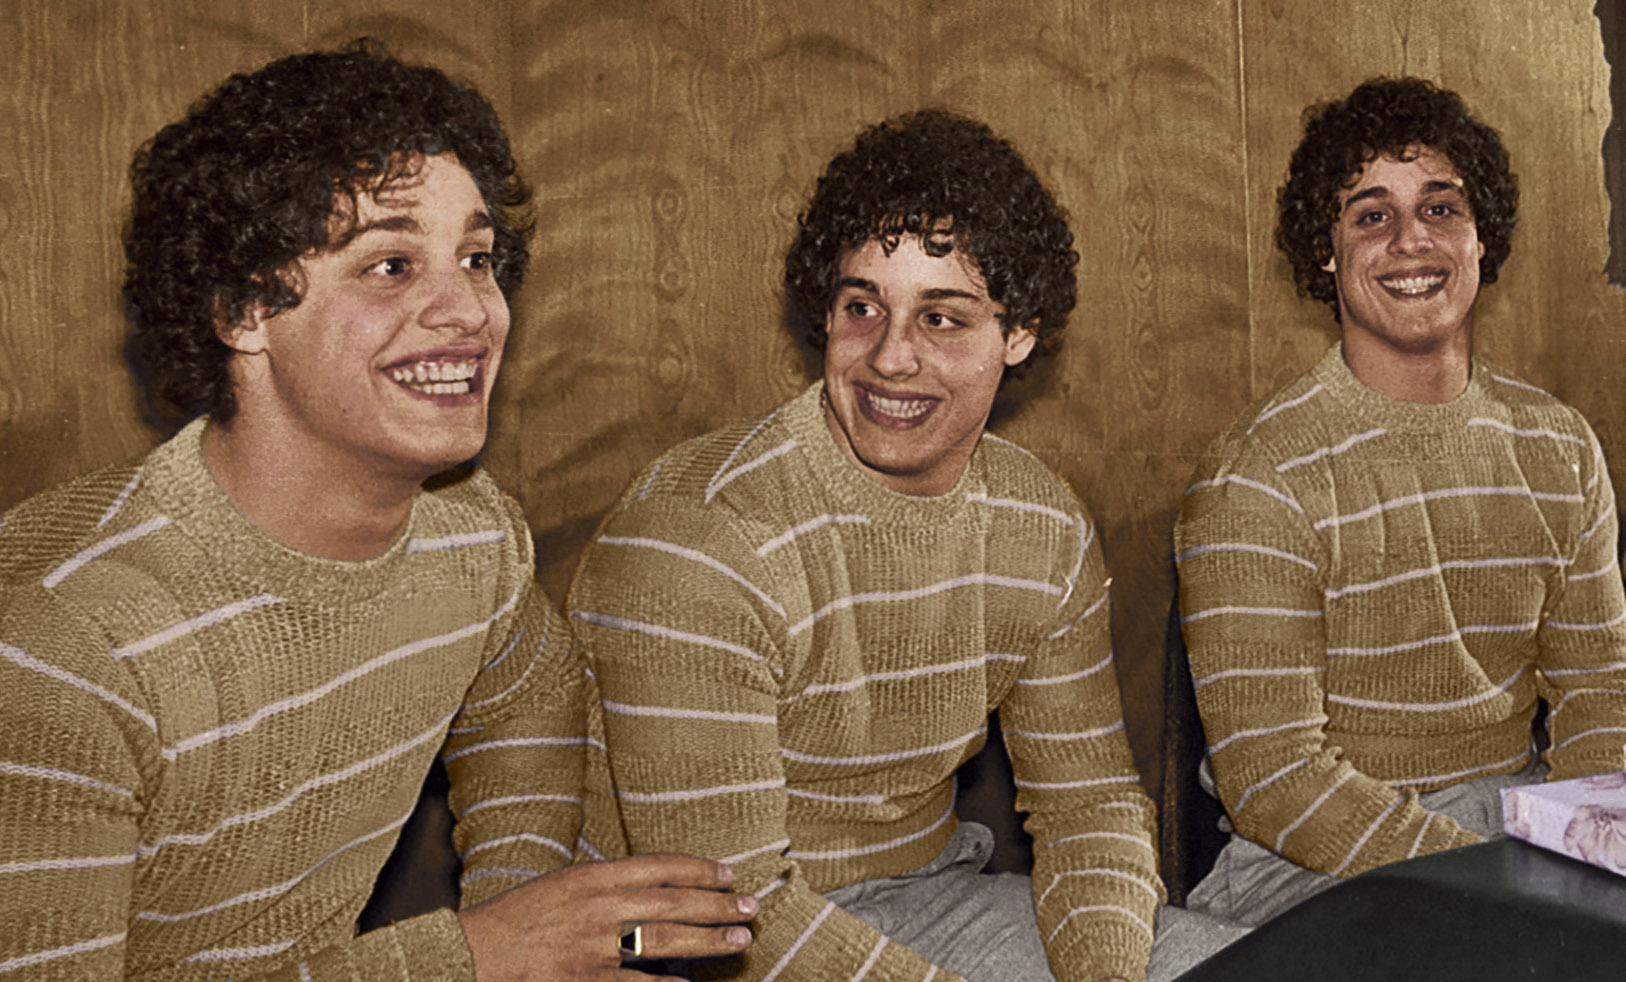 Identical triplets (left to right) Eddy, David and Bobby, adopted into different Jewish families at birth, are the subjects of a new documentary film.